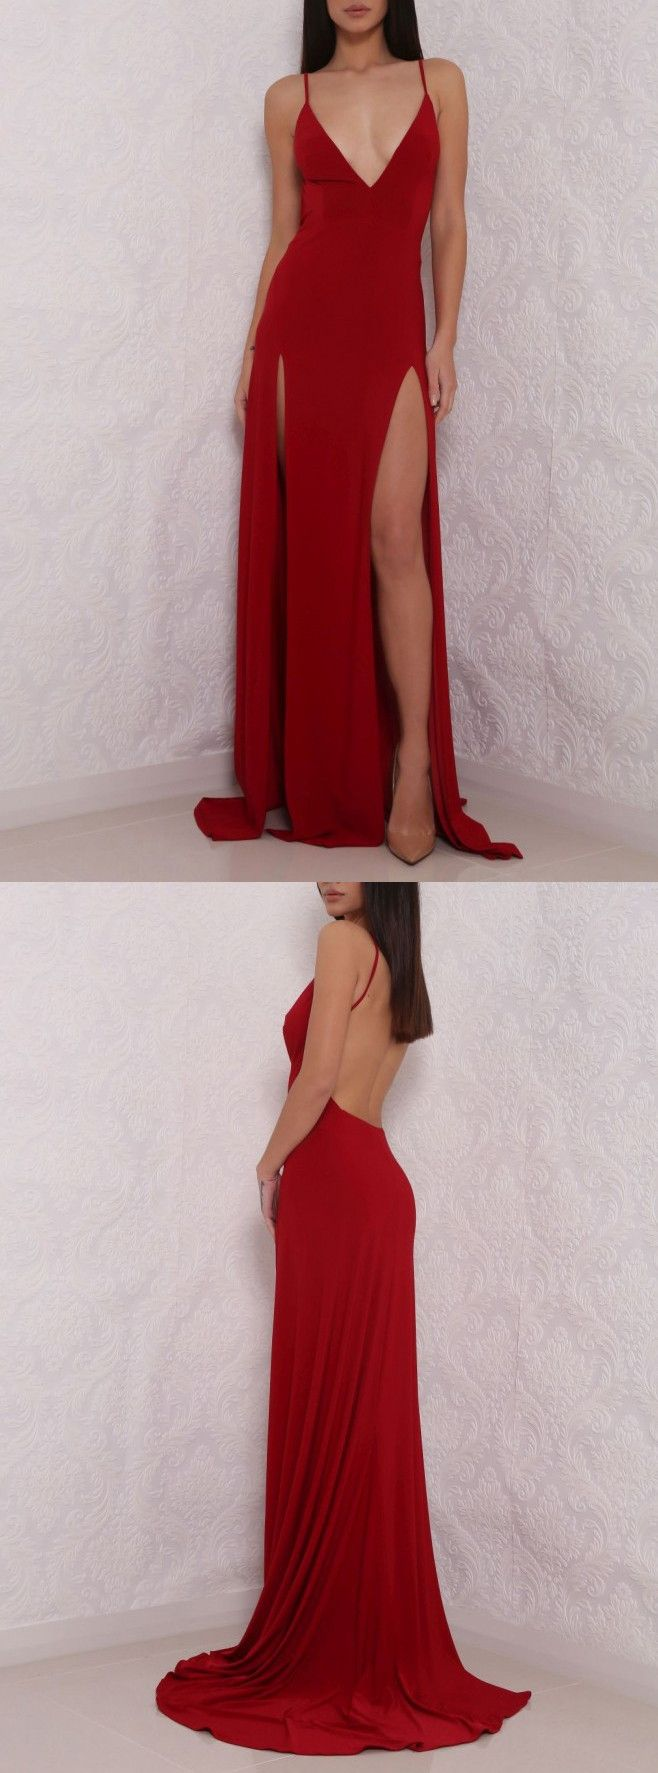 Sexy Deep V Neck Red Prom Dress,High Slit Prom Dress, Sexy Backless Gown, Backless Evening Dress,Prom Formal Dress,Woman Dress - Thumbnail 1